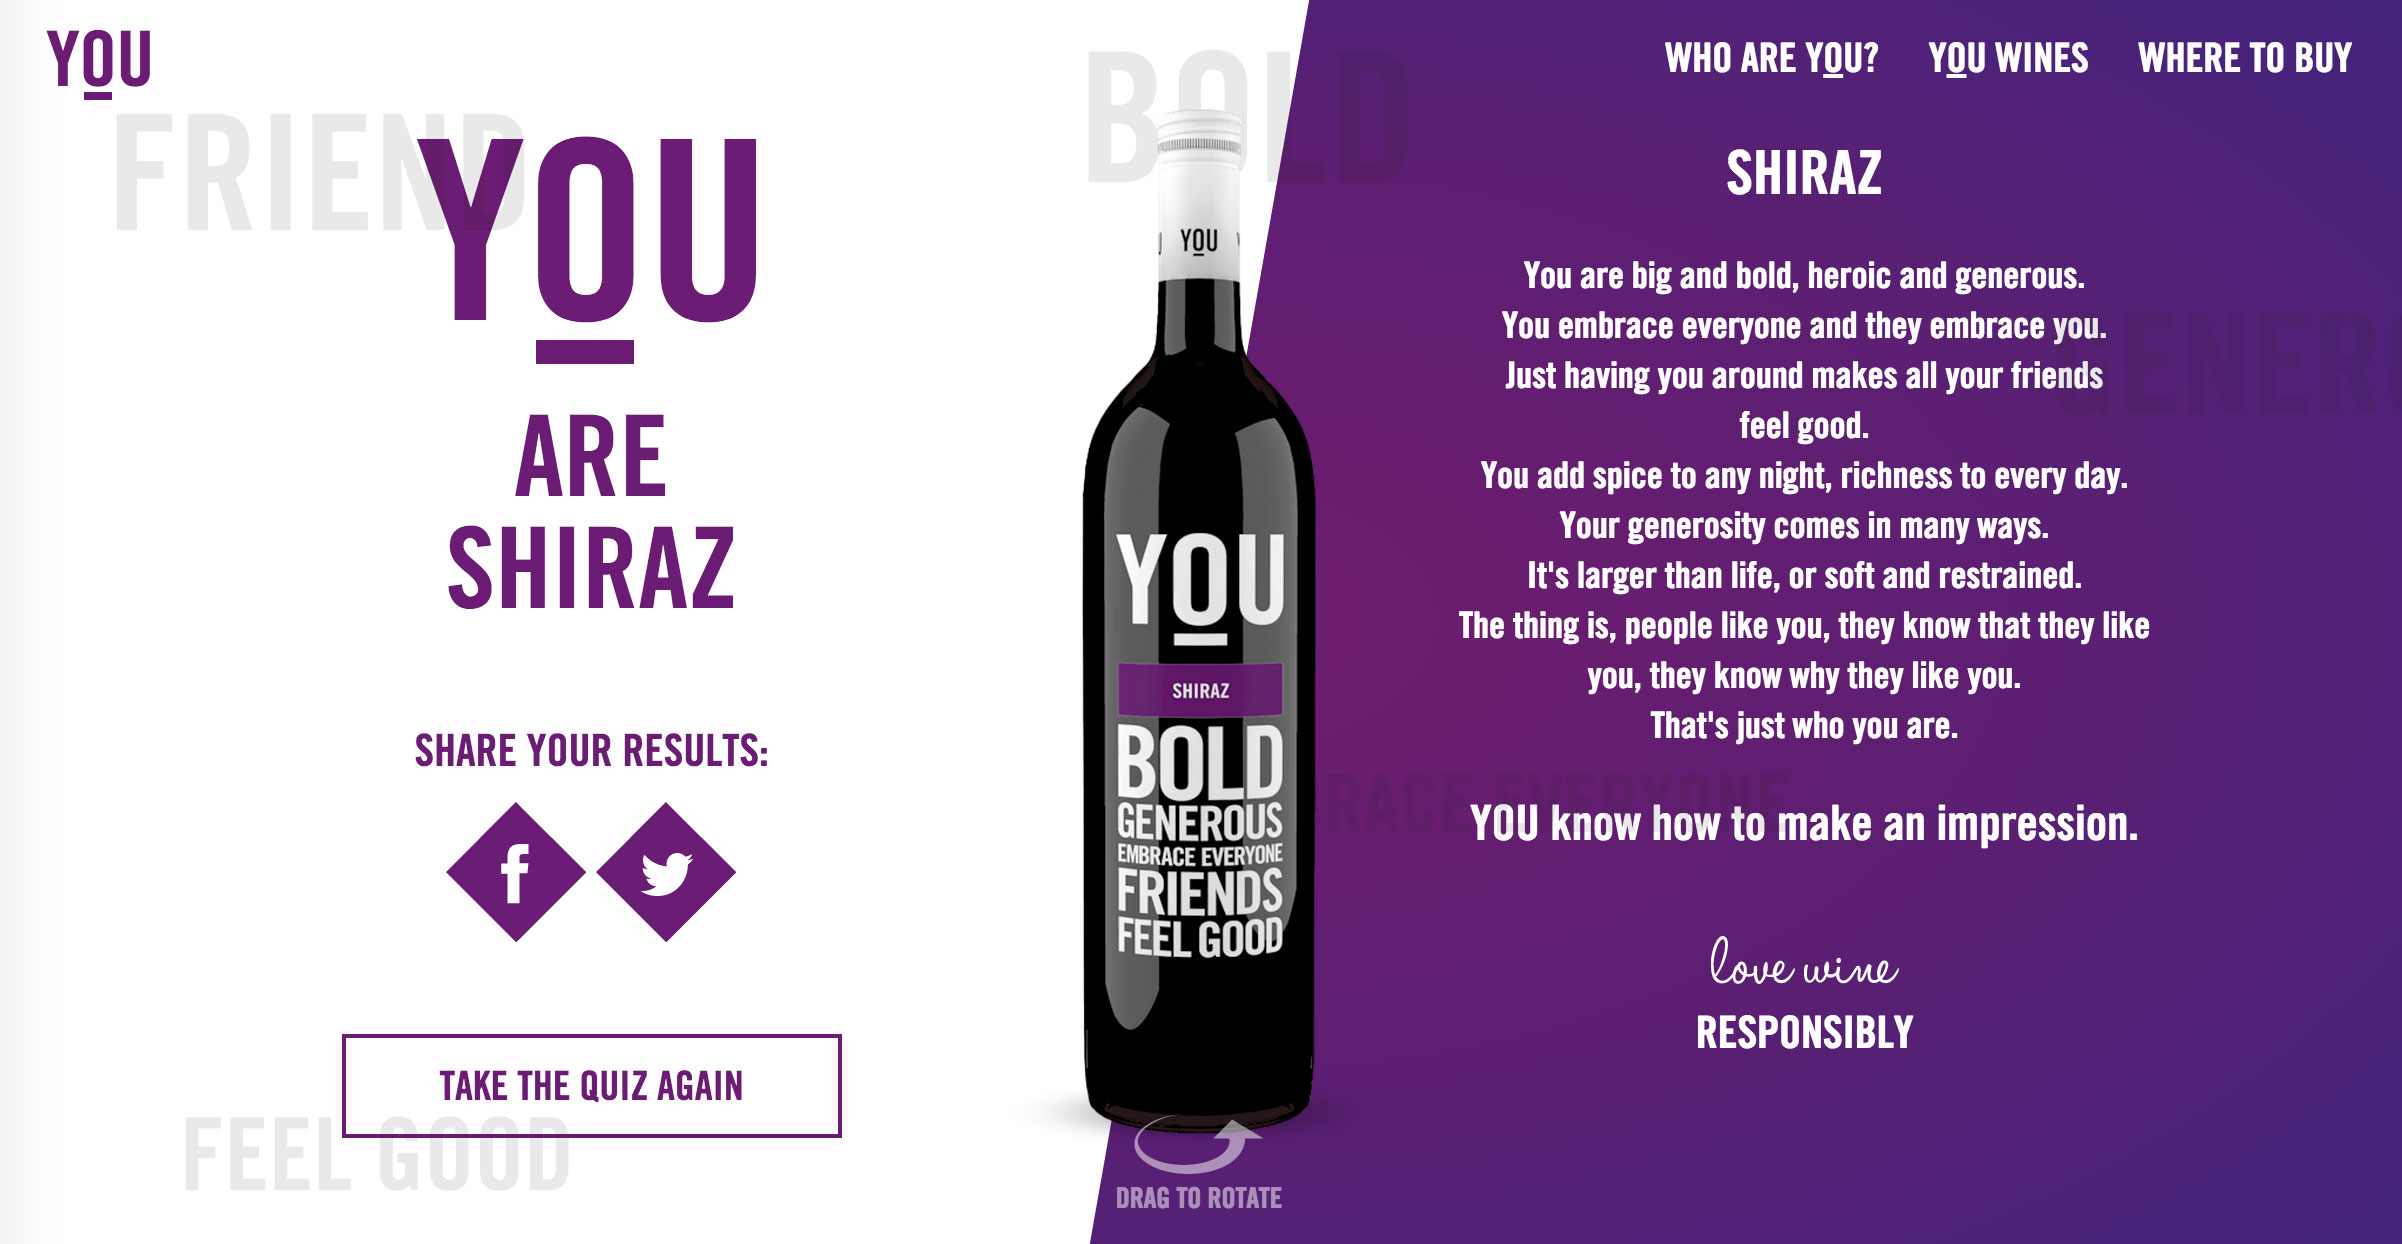 Quiz_YouWines_ContentMarketing_Millennials